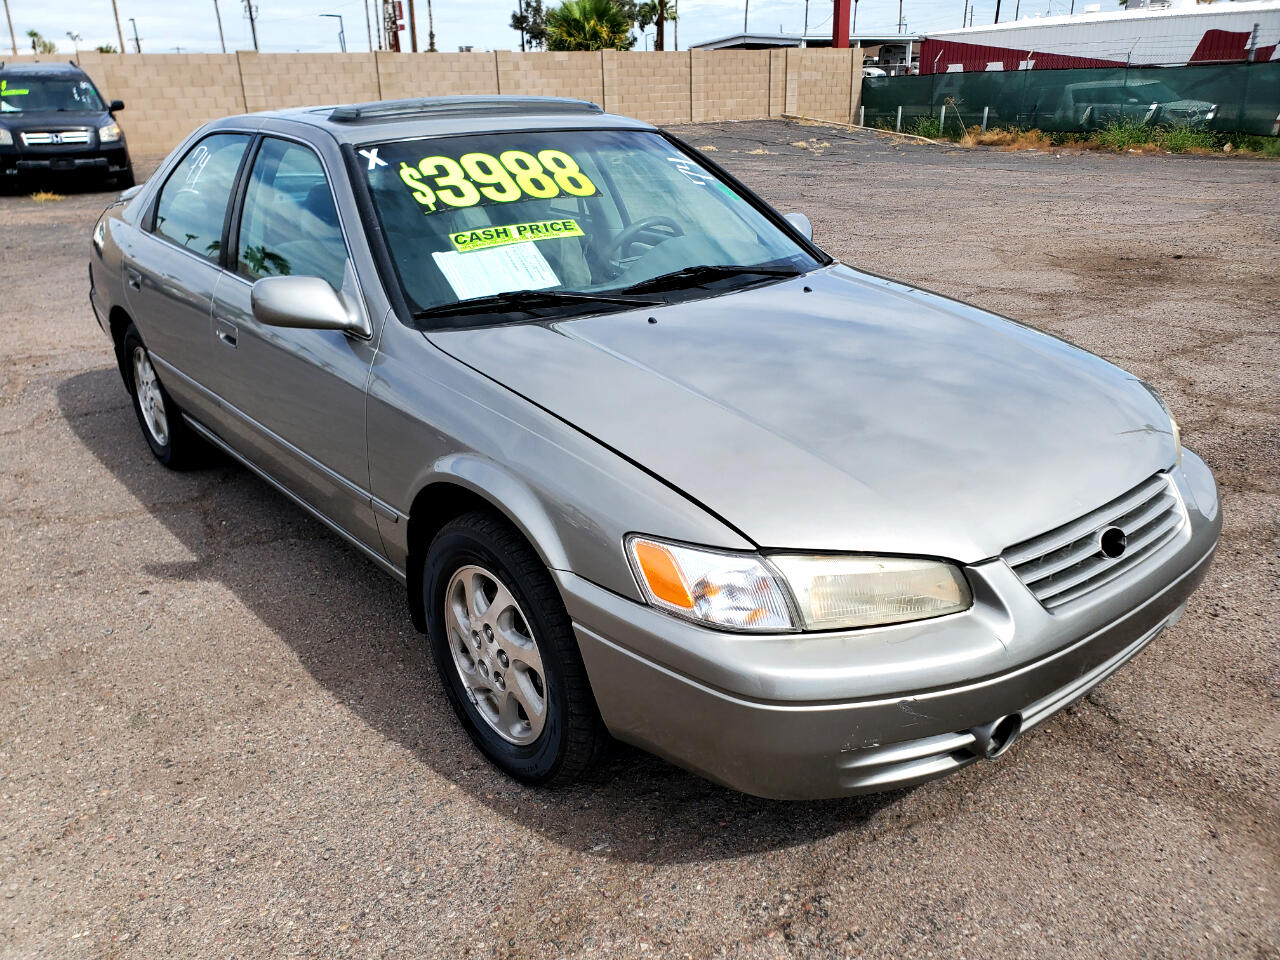 Toyota Camry 4dr Sdn XLE V6 Auto 1999